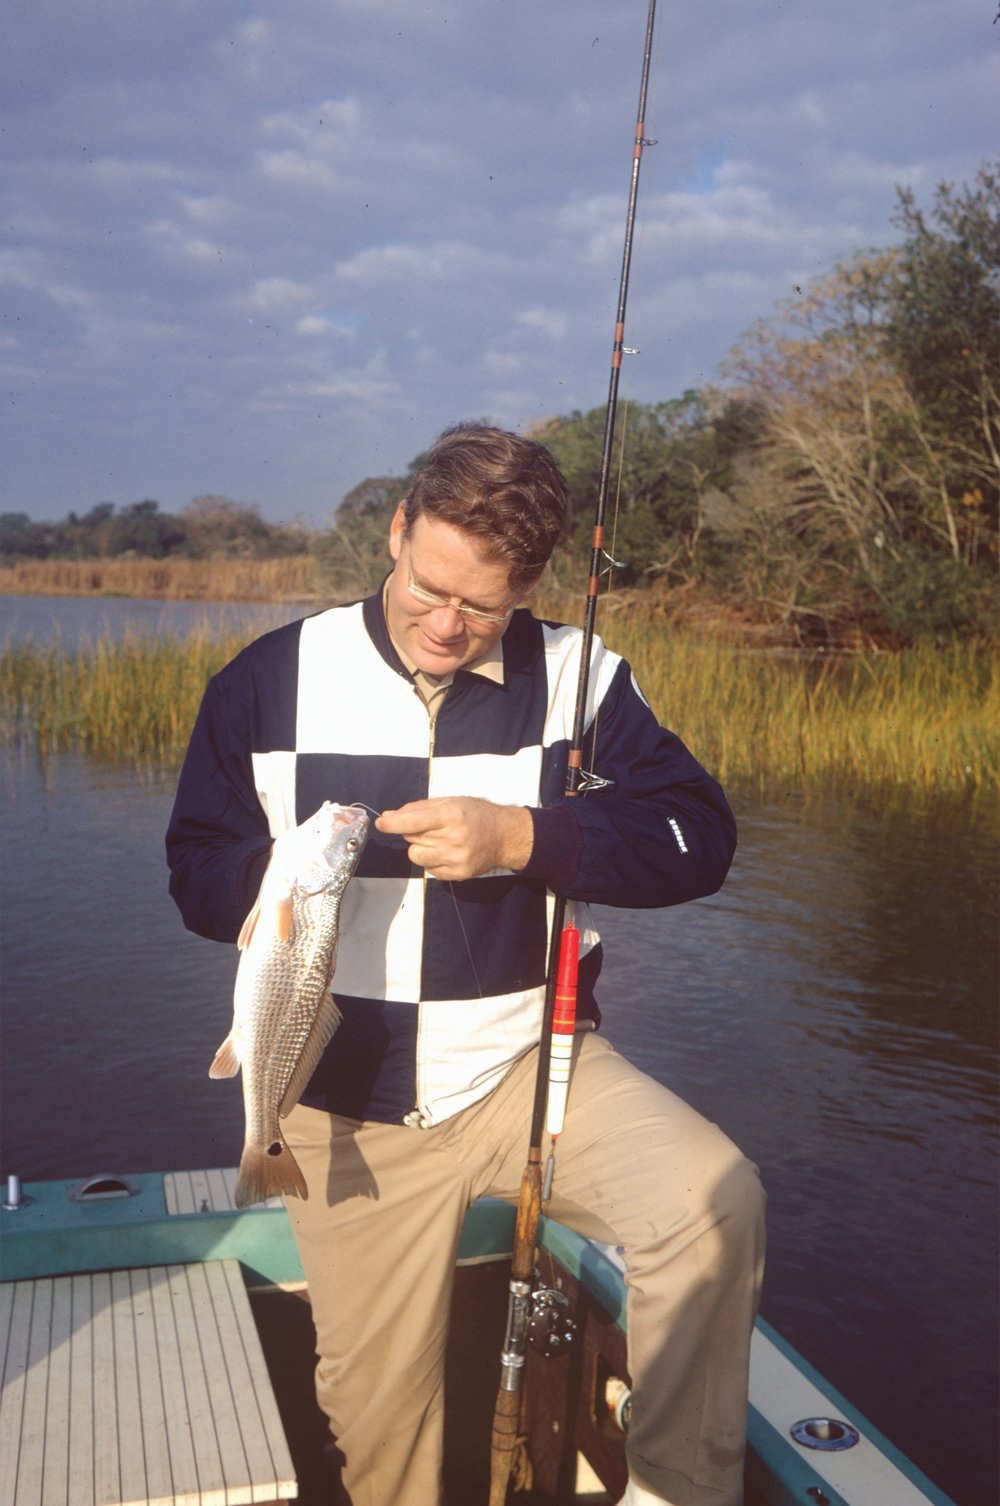 Reiger on the job in the Savannah River circa 1970.